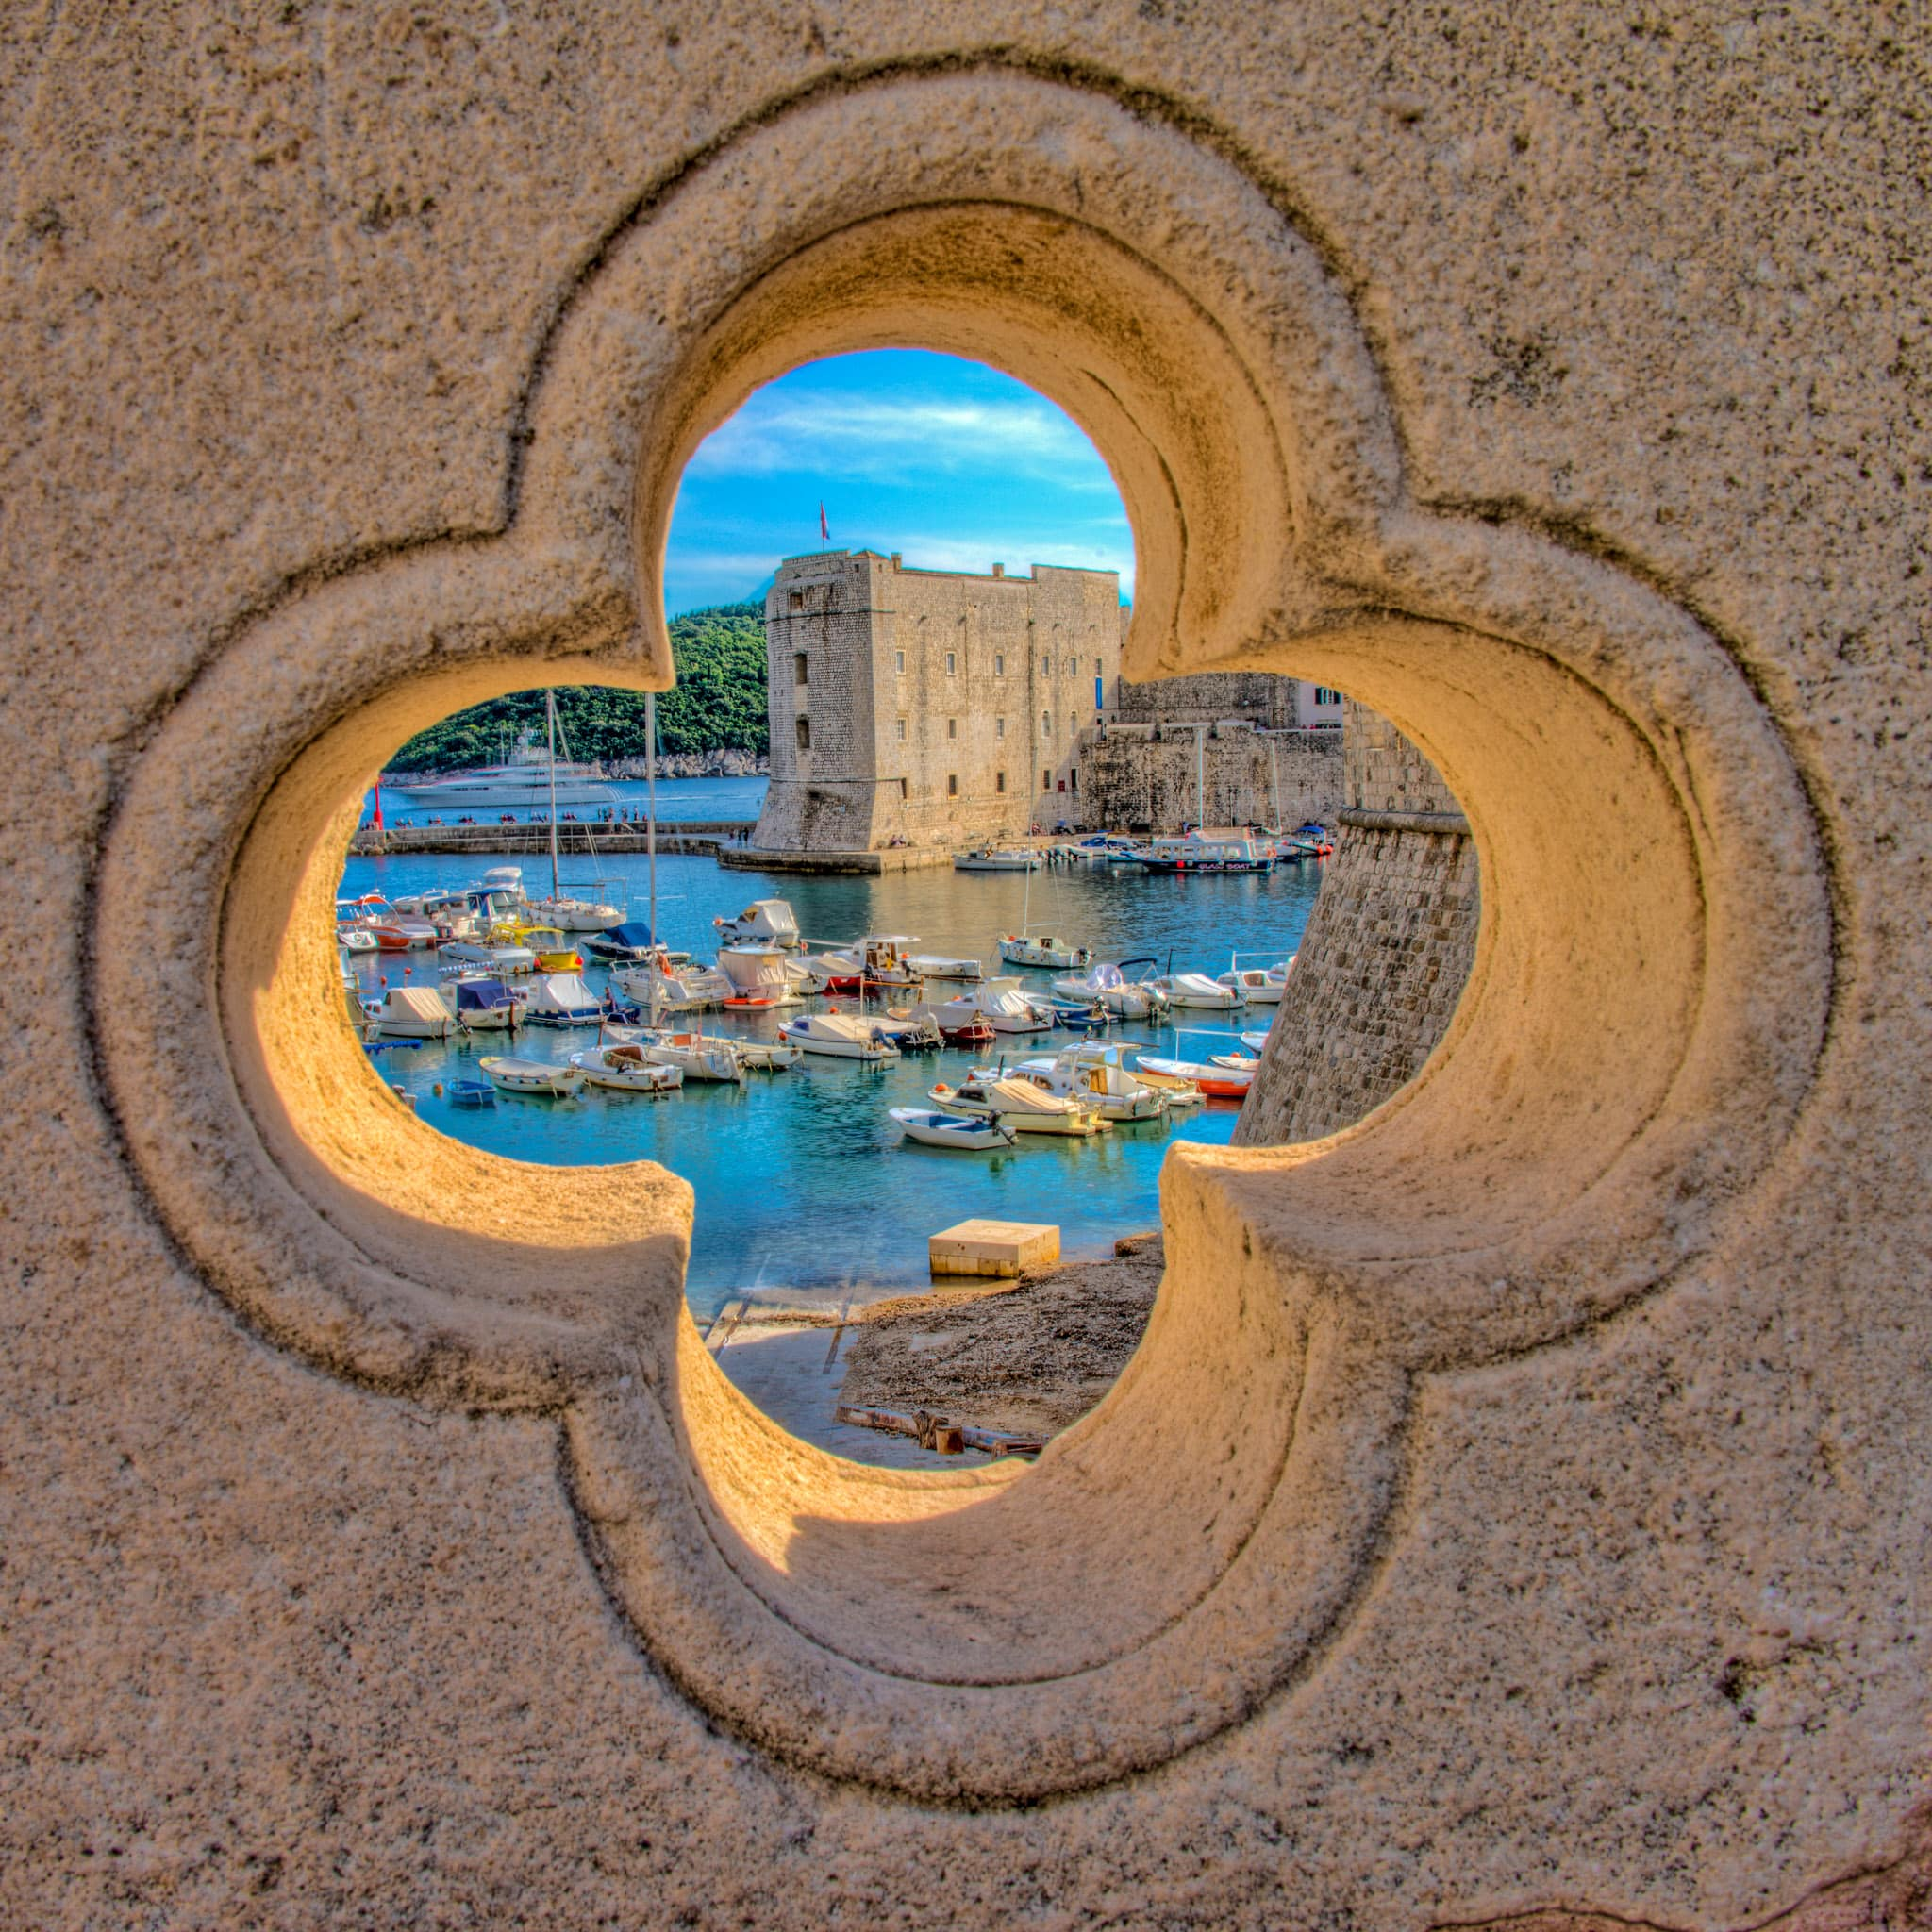 The harbor can be seen through one of many quatrefoils that adorn the bridge at the Ploce Gate in Dubrovnik Old Town in Croatia.